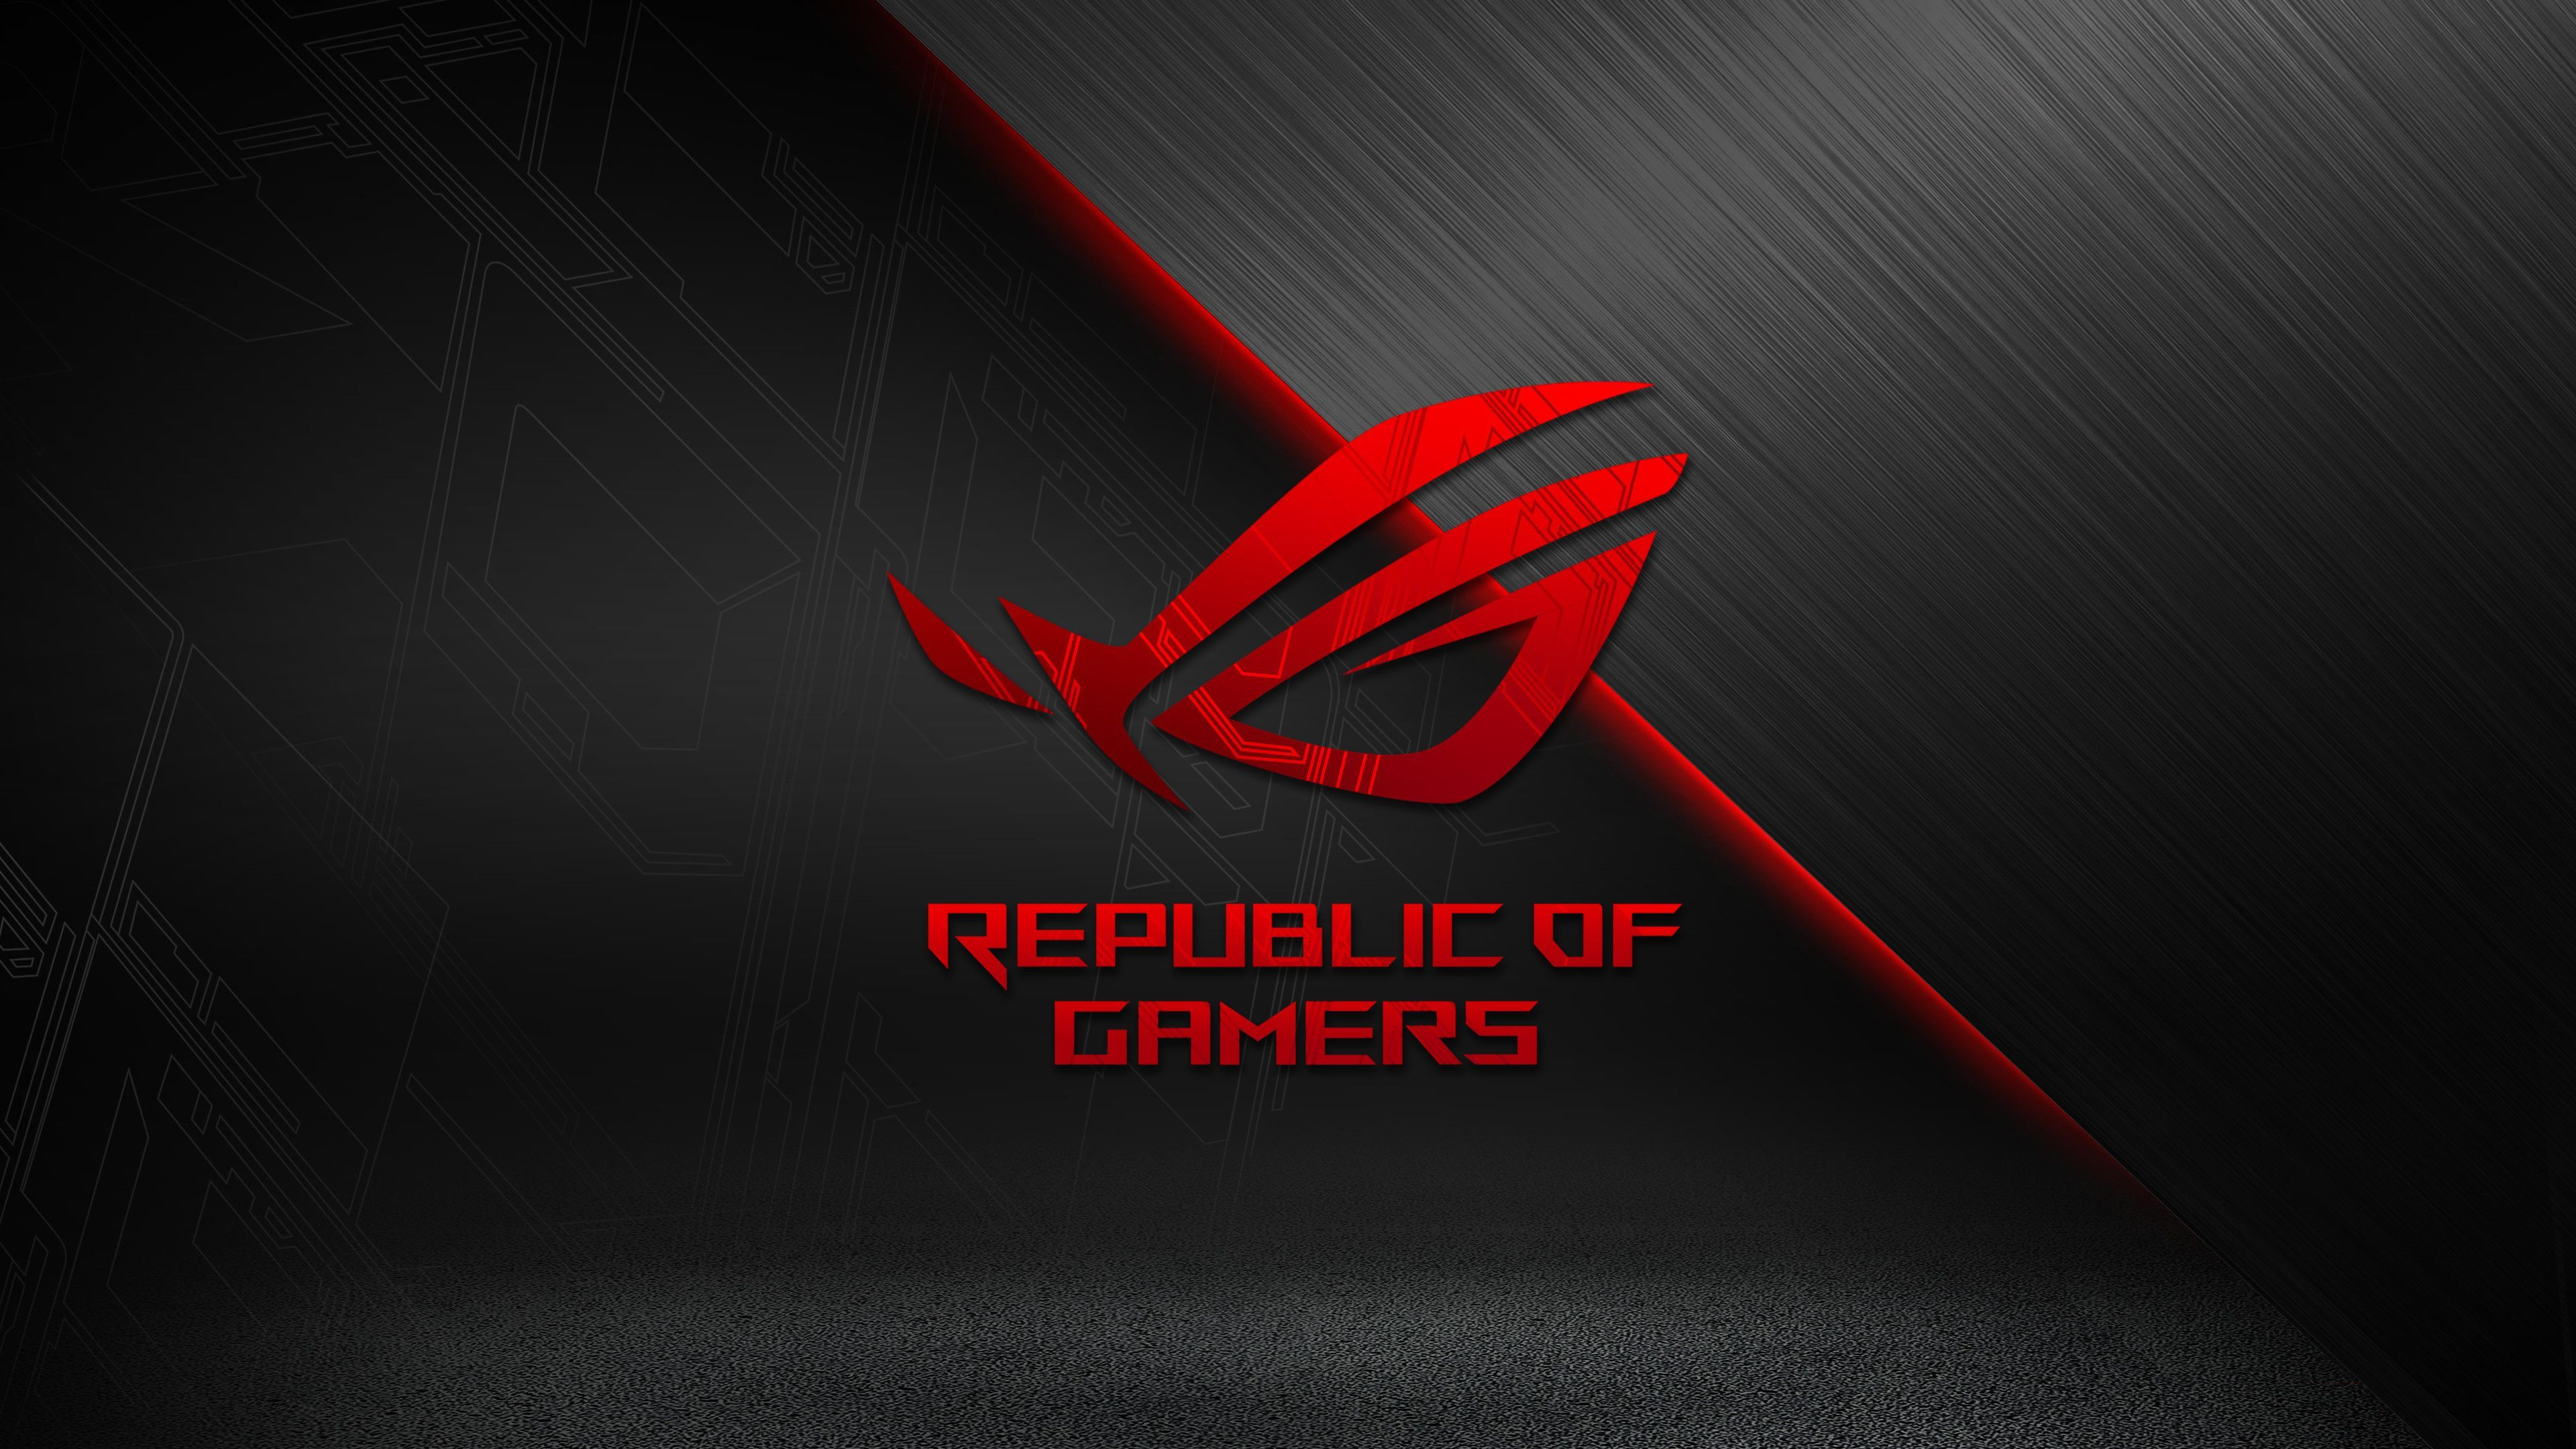 Asus ROG 4K Gaming Wallpapers   Top Asus ROG 4K Gaming 3840x2160